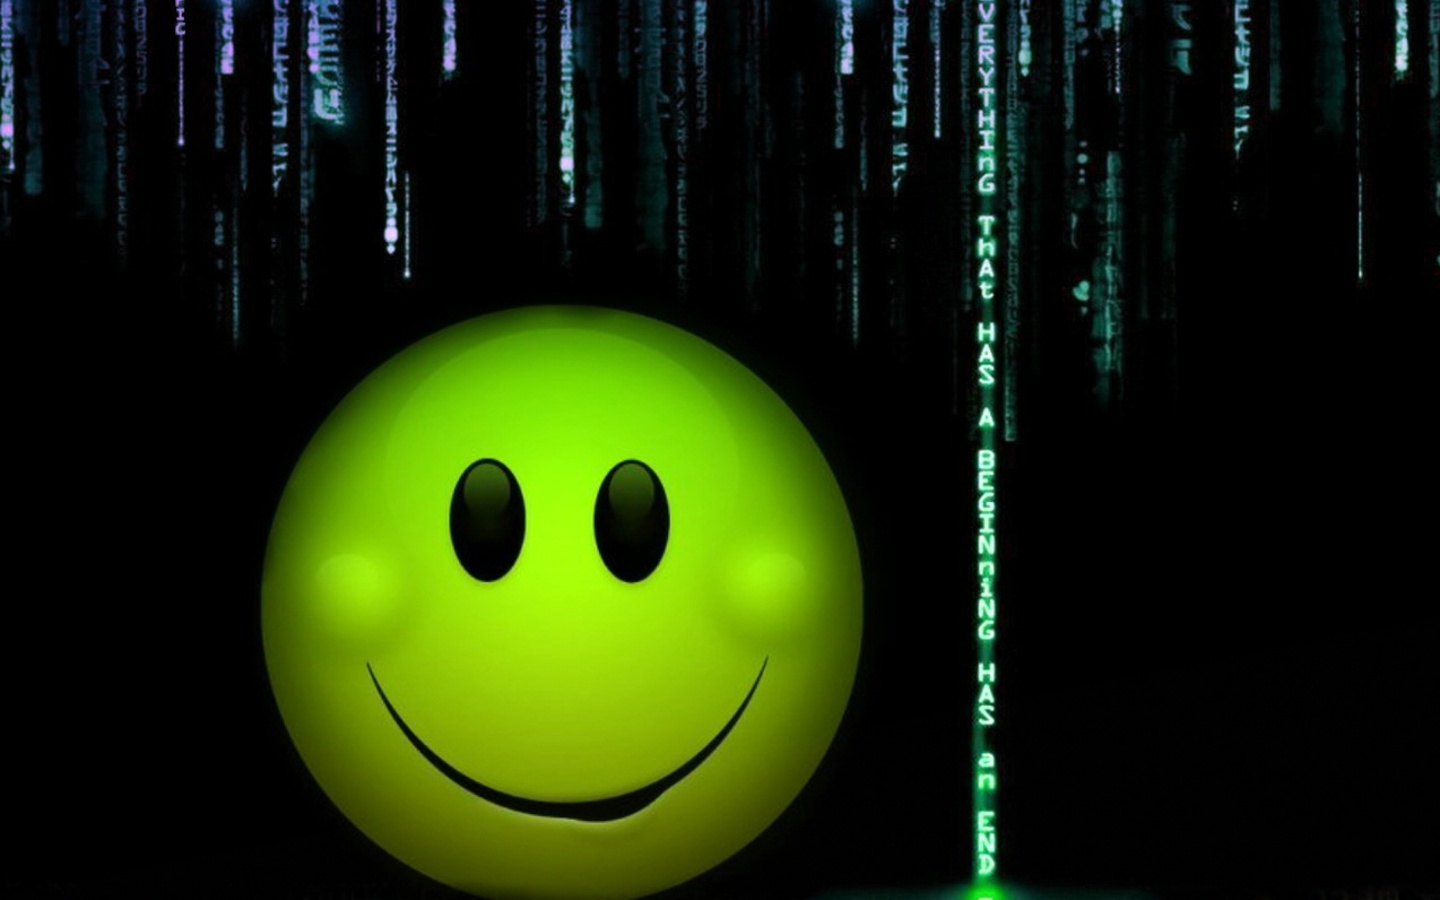 Smiley wallpapers android apps on google play 1440x900 altavistaventures Choice Image